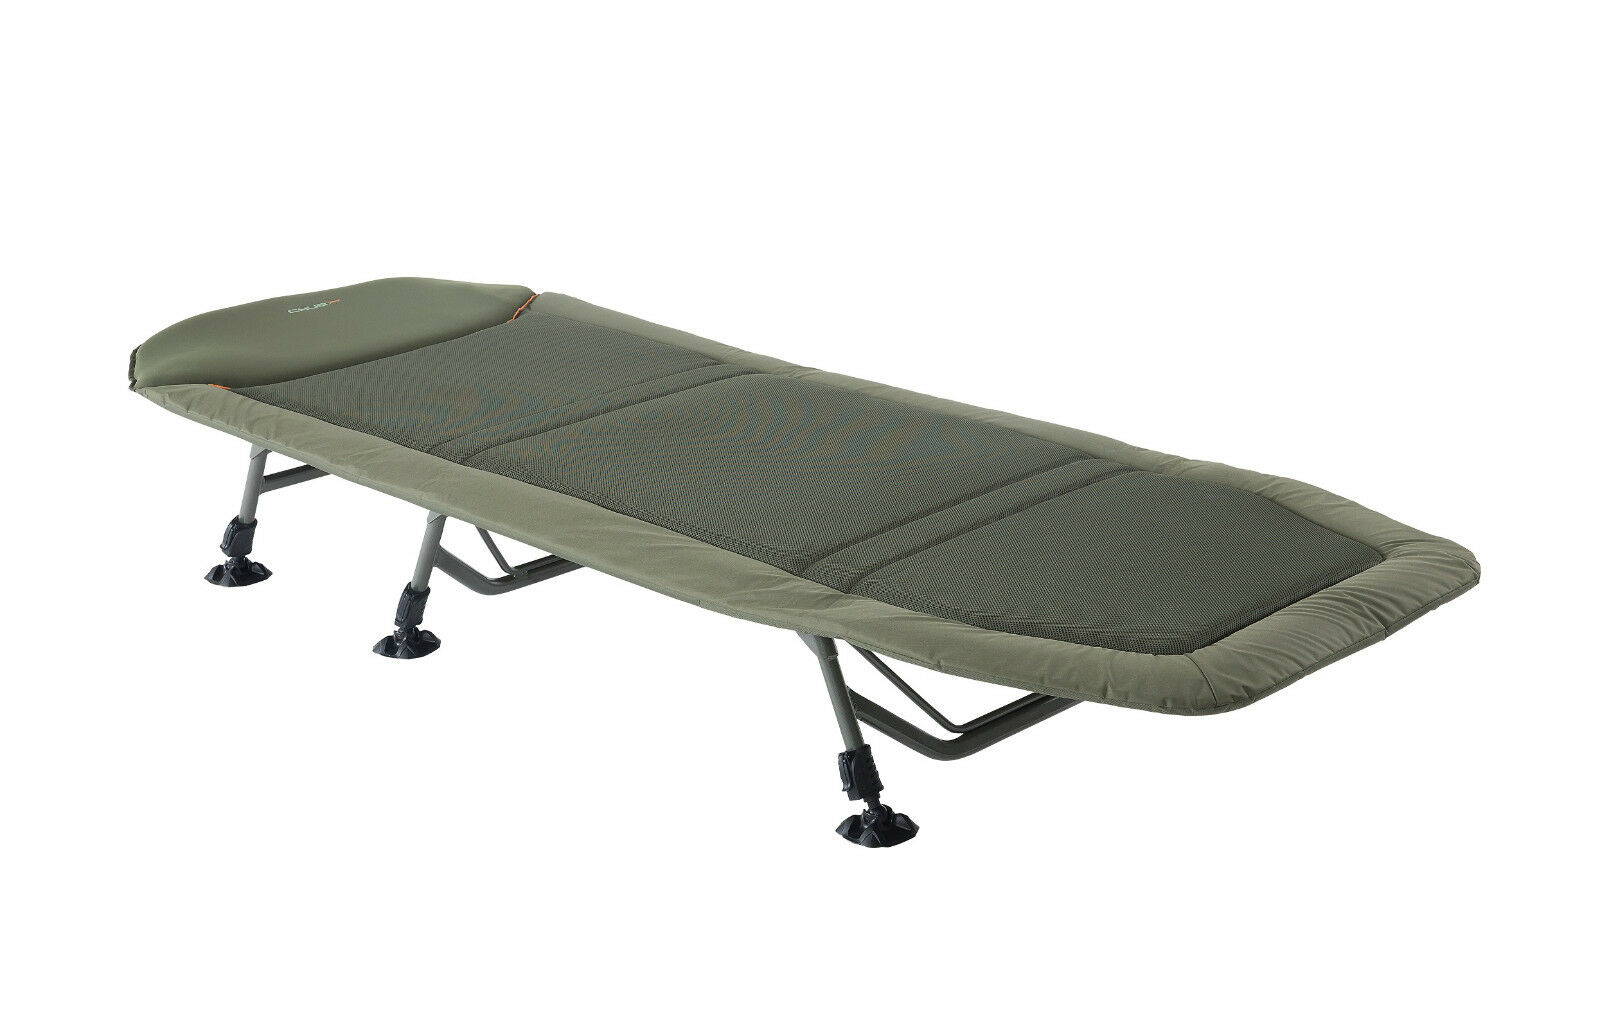 Chub Outkast Flatbed 1377364 LETTINO ANGEL LETTINO Carpa sono Bedchair Bed Chair